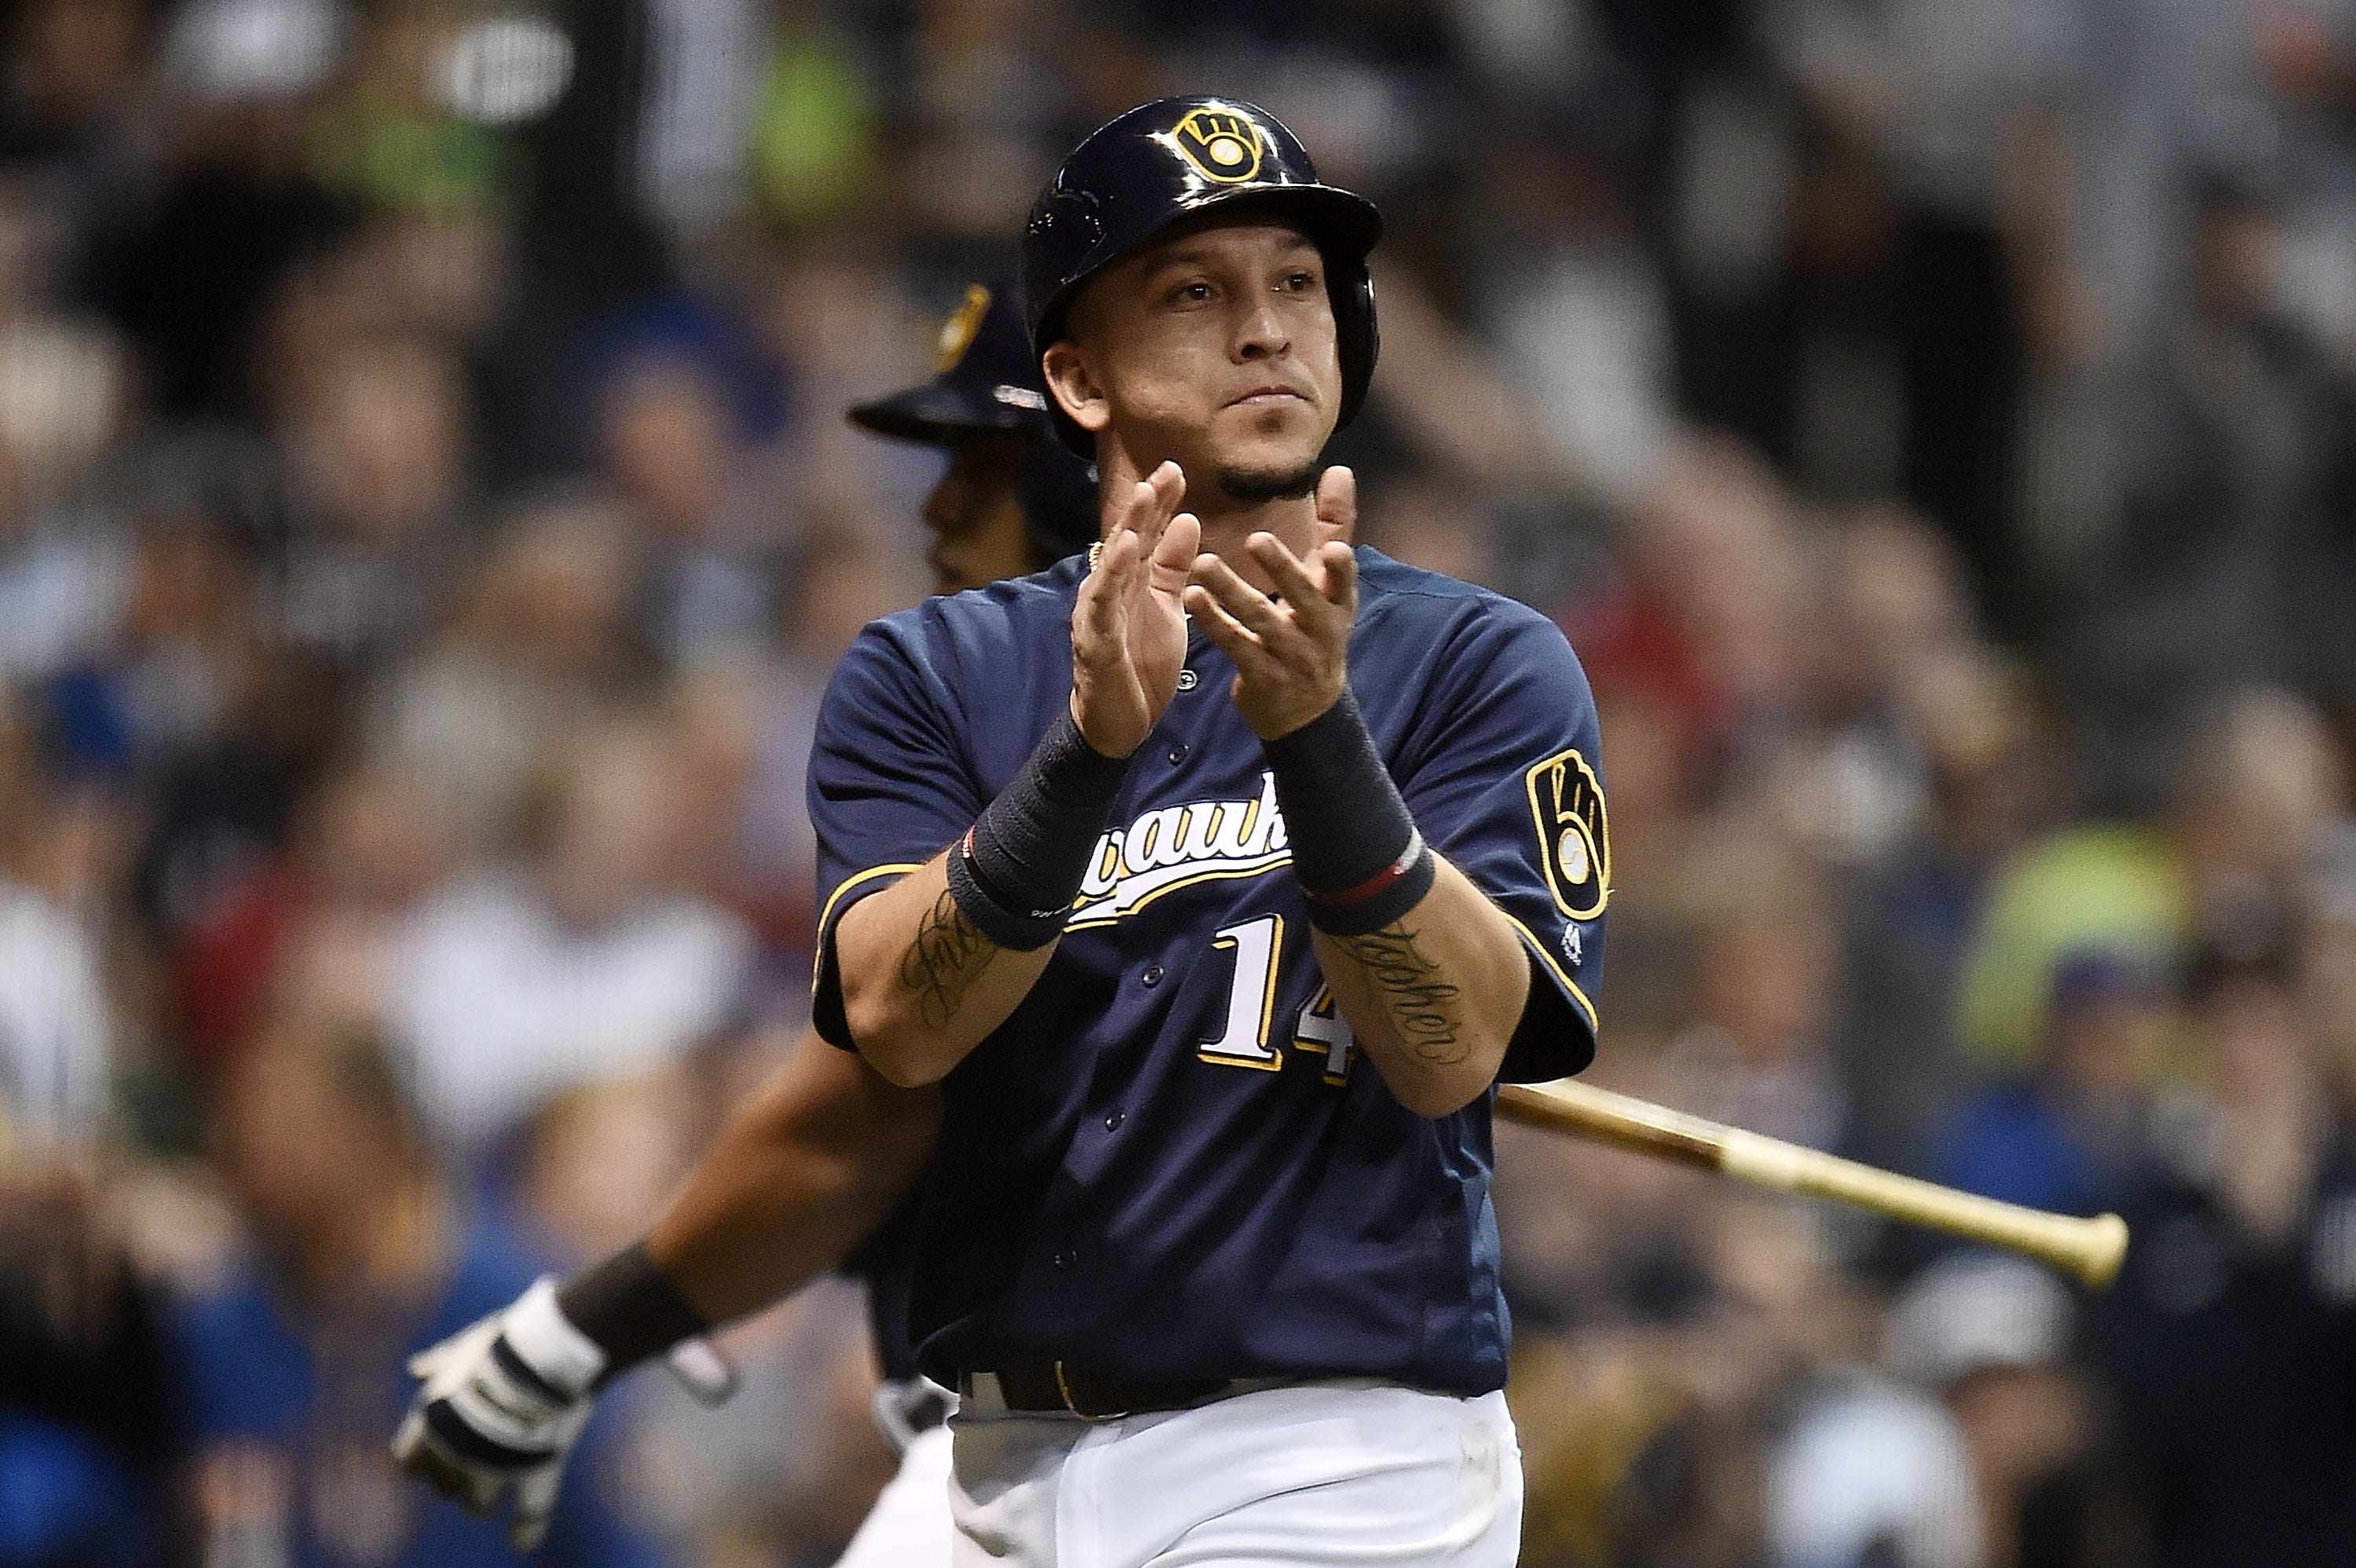 Hernán Pérez gets first crack in left field in place of Ryan Braun